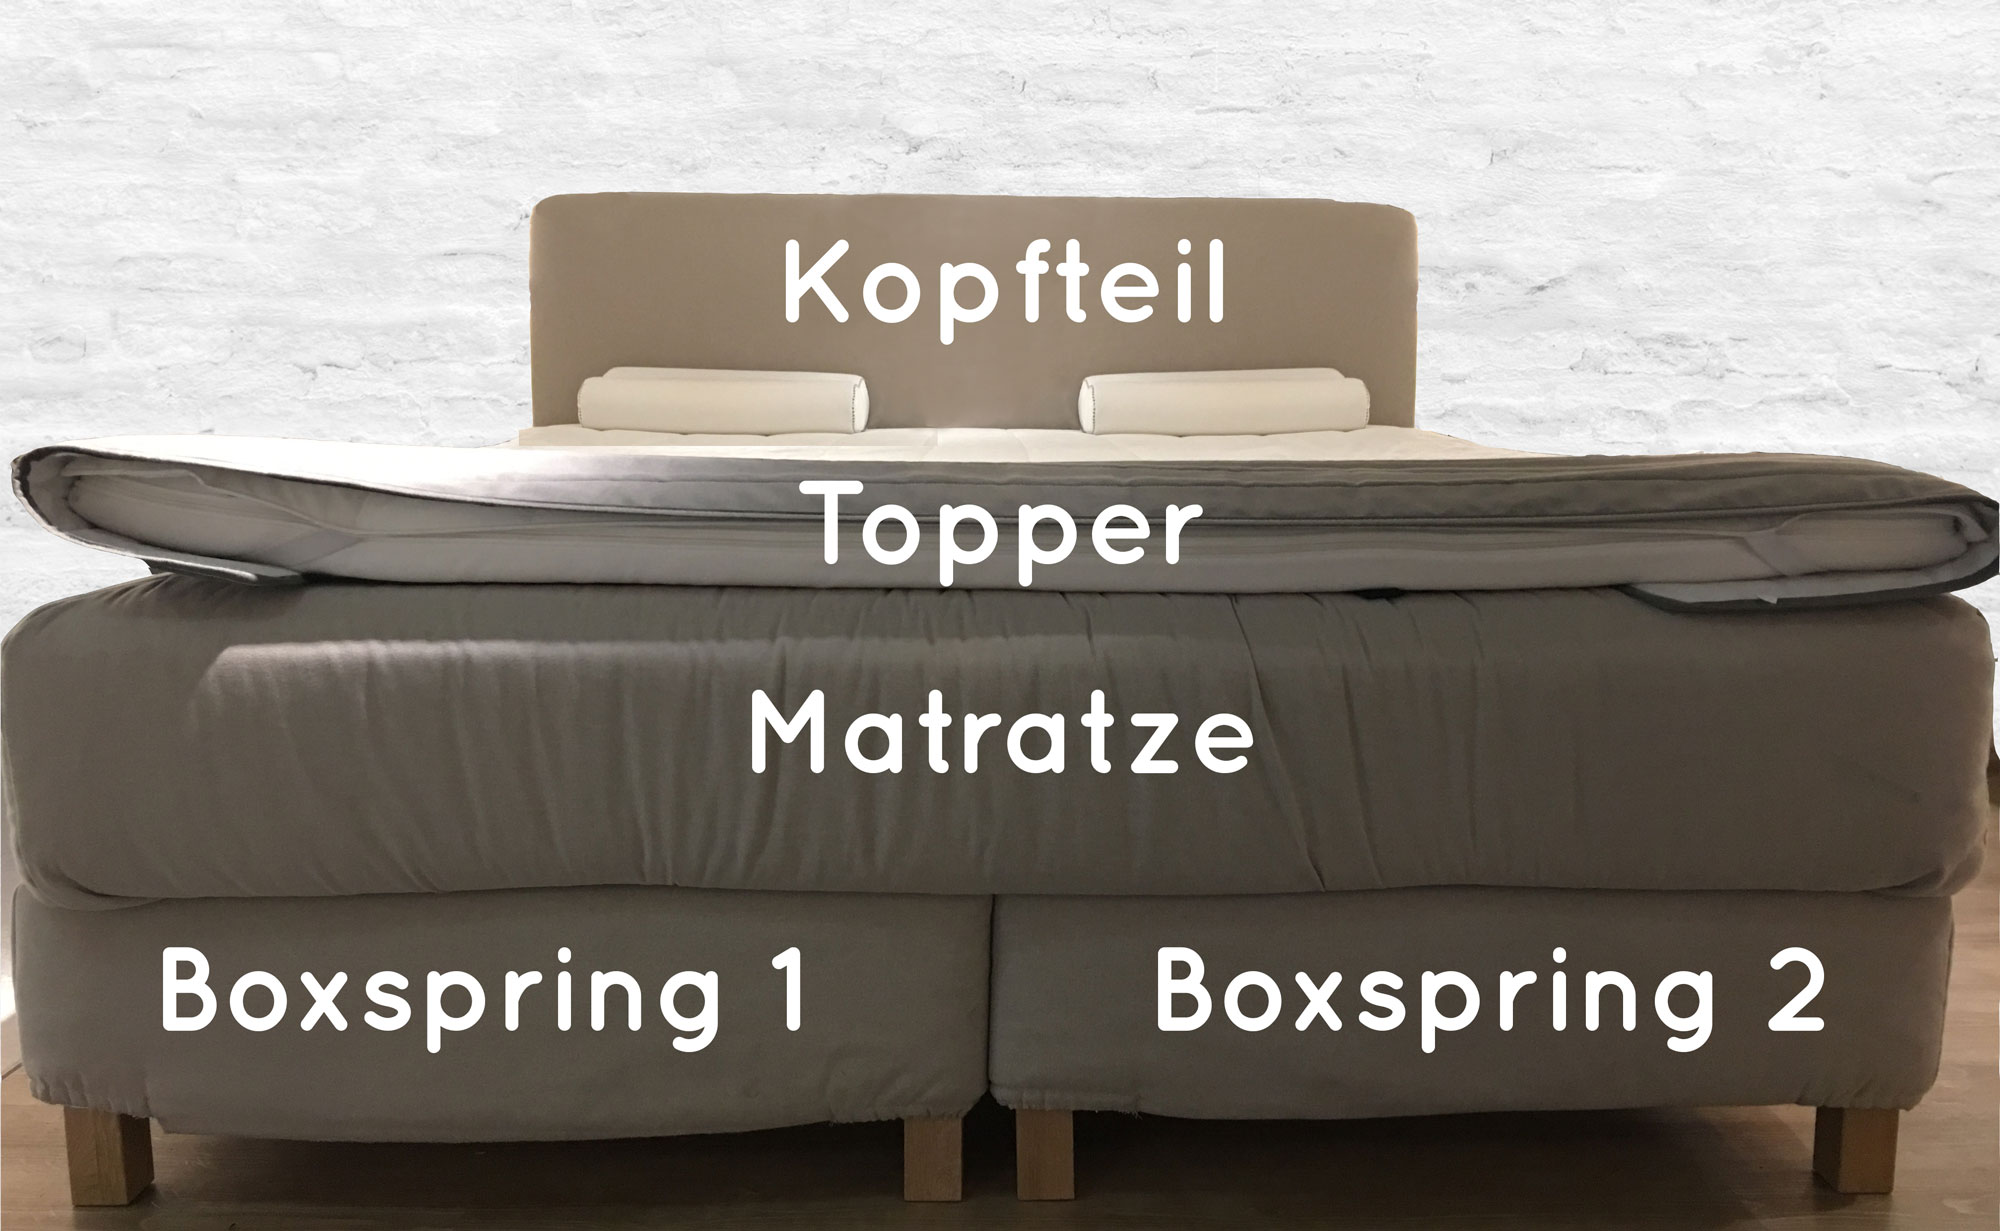 boxspringbetten beratung vom bettenpapst boxspringbetten matratzen und mehr. Black Bedroom Furniture Sets. Home Design Ideas